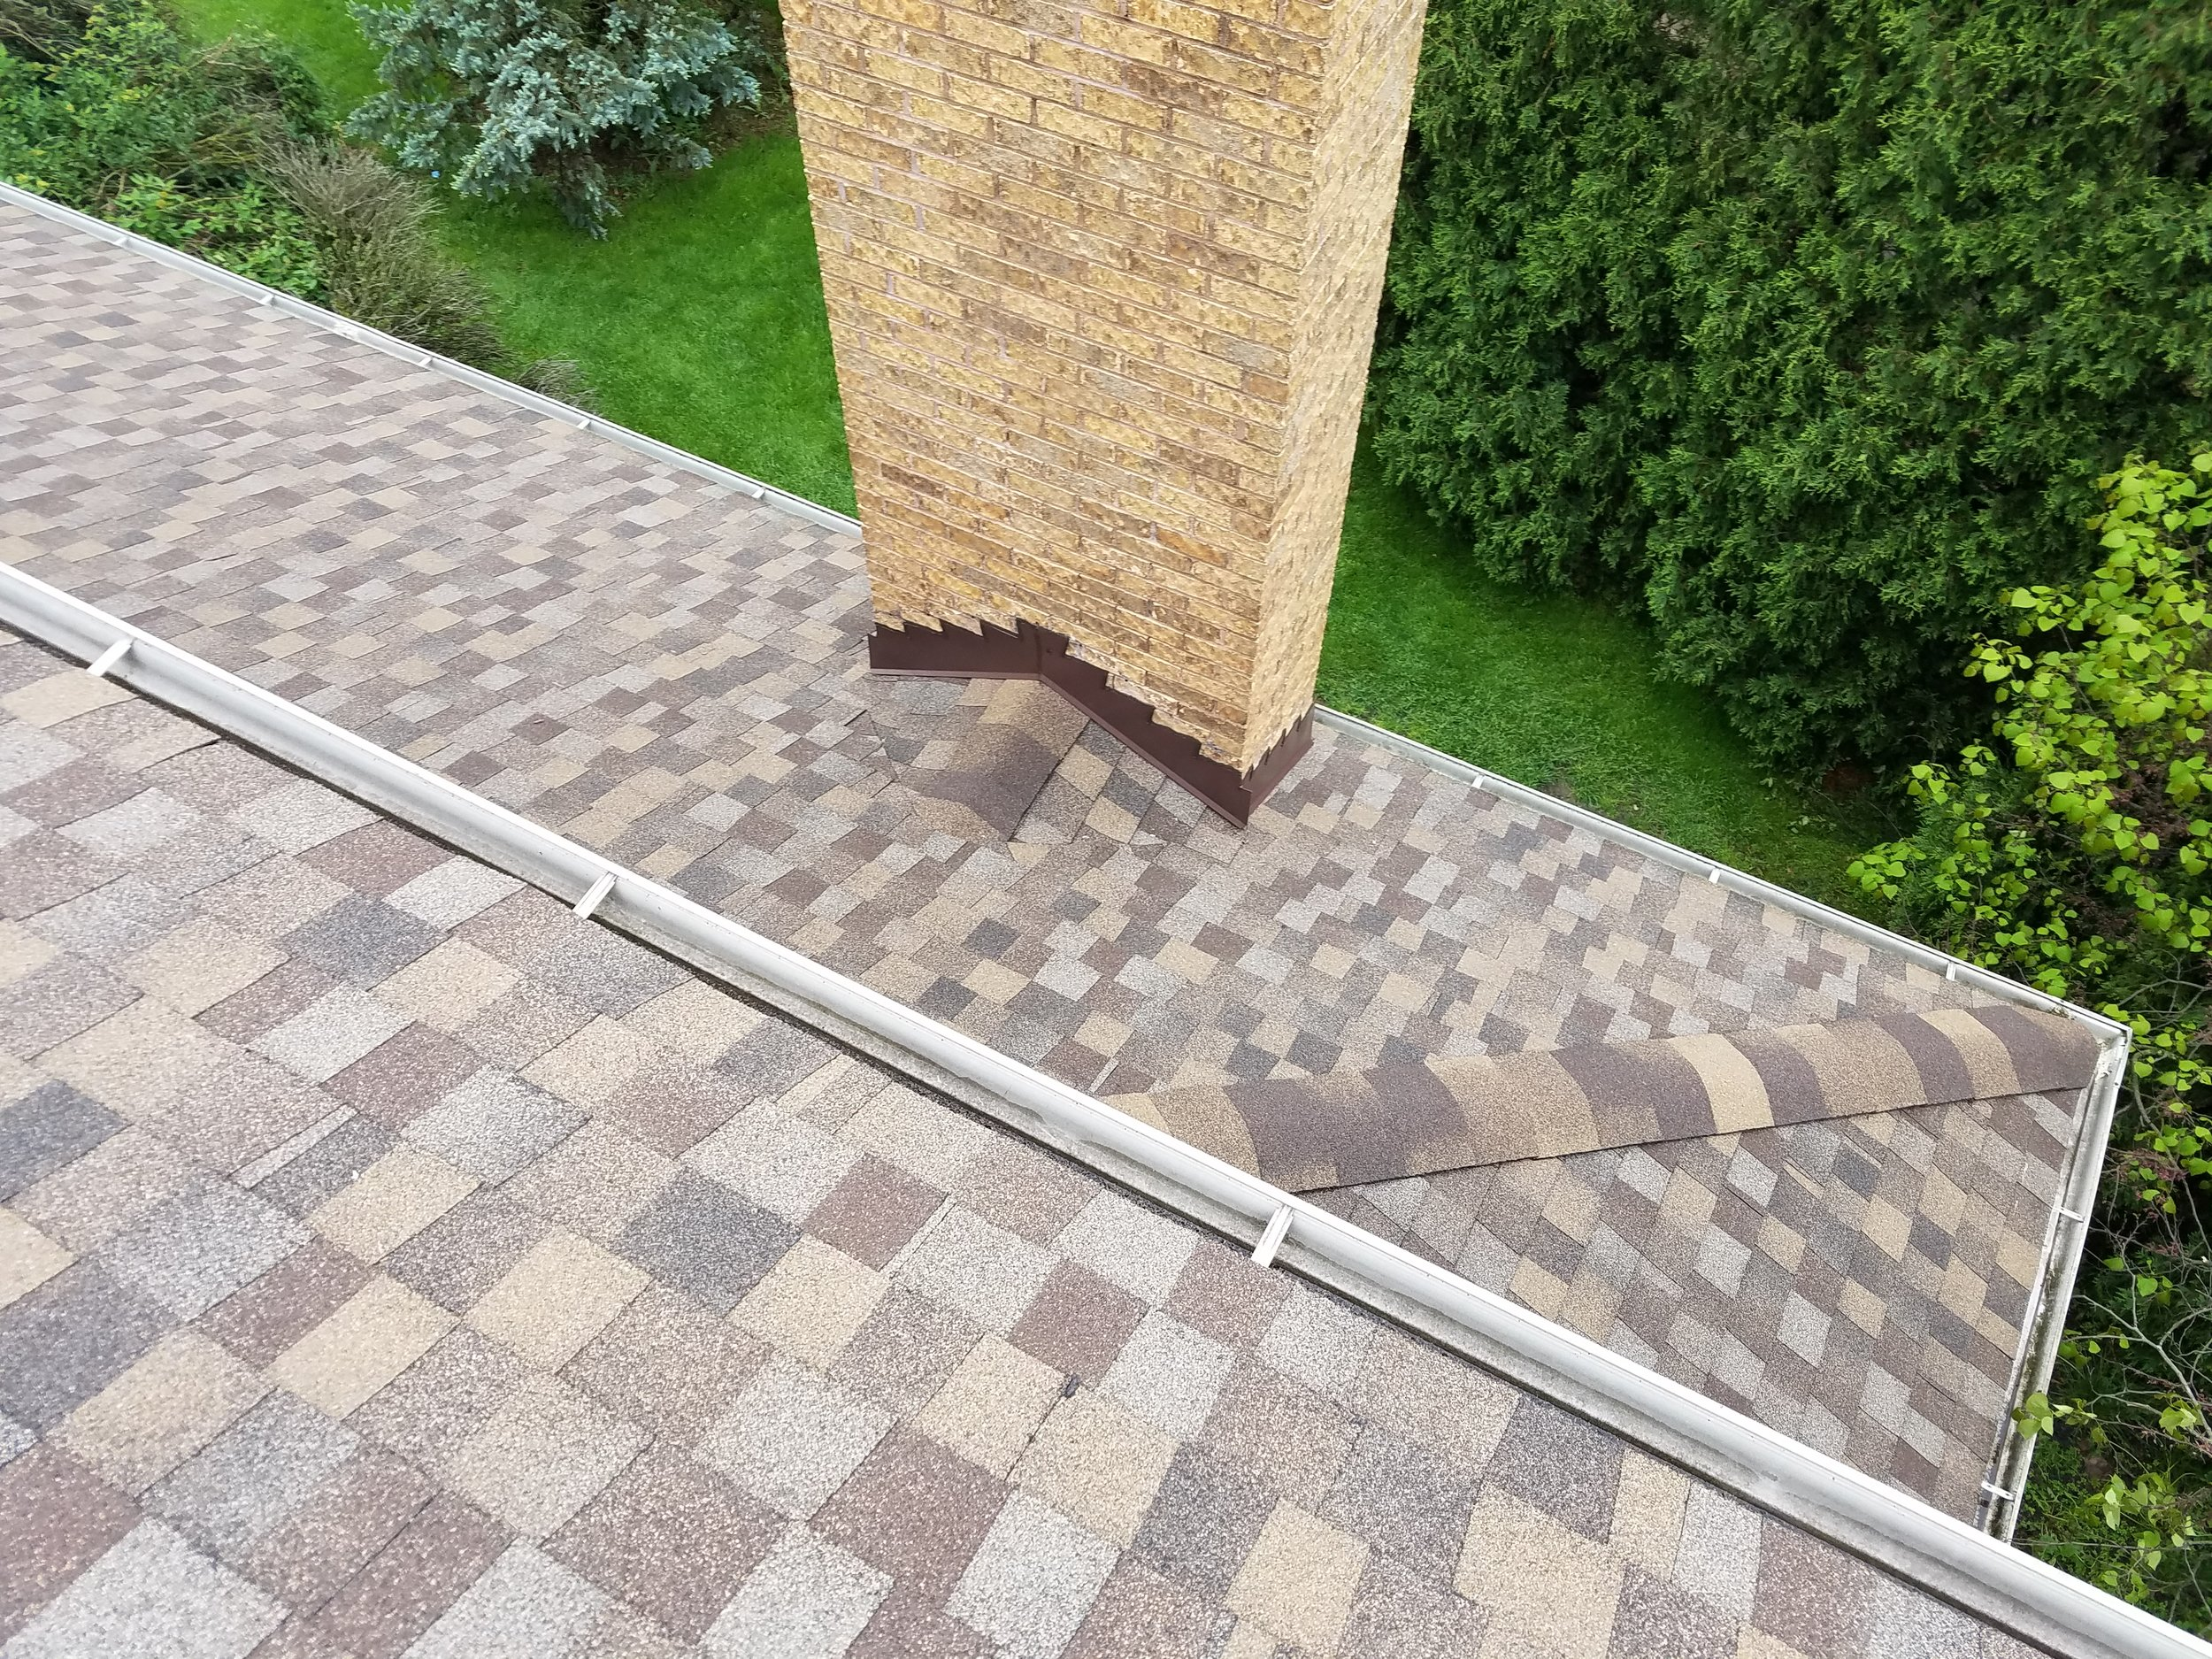 Residential Steep Slope Services - Are you a home owner? Lifespan of your shingle roof is anywhere from 25 - 50 years. Feze Roofing, Inc. ® can help increase the curb appeal of your home with an economical investment towards your exterior needs. We are here to answer all of your questions and offer FREE estimates. Call: (630) 530-5944